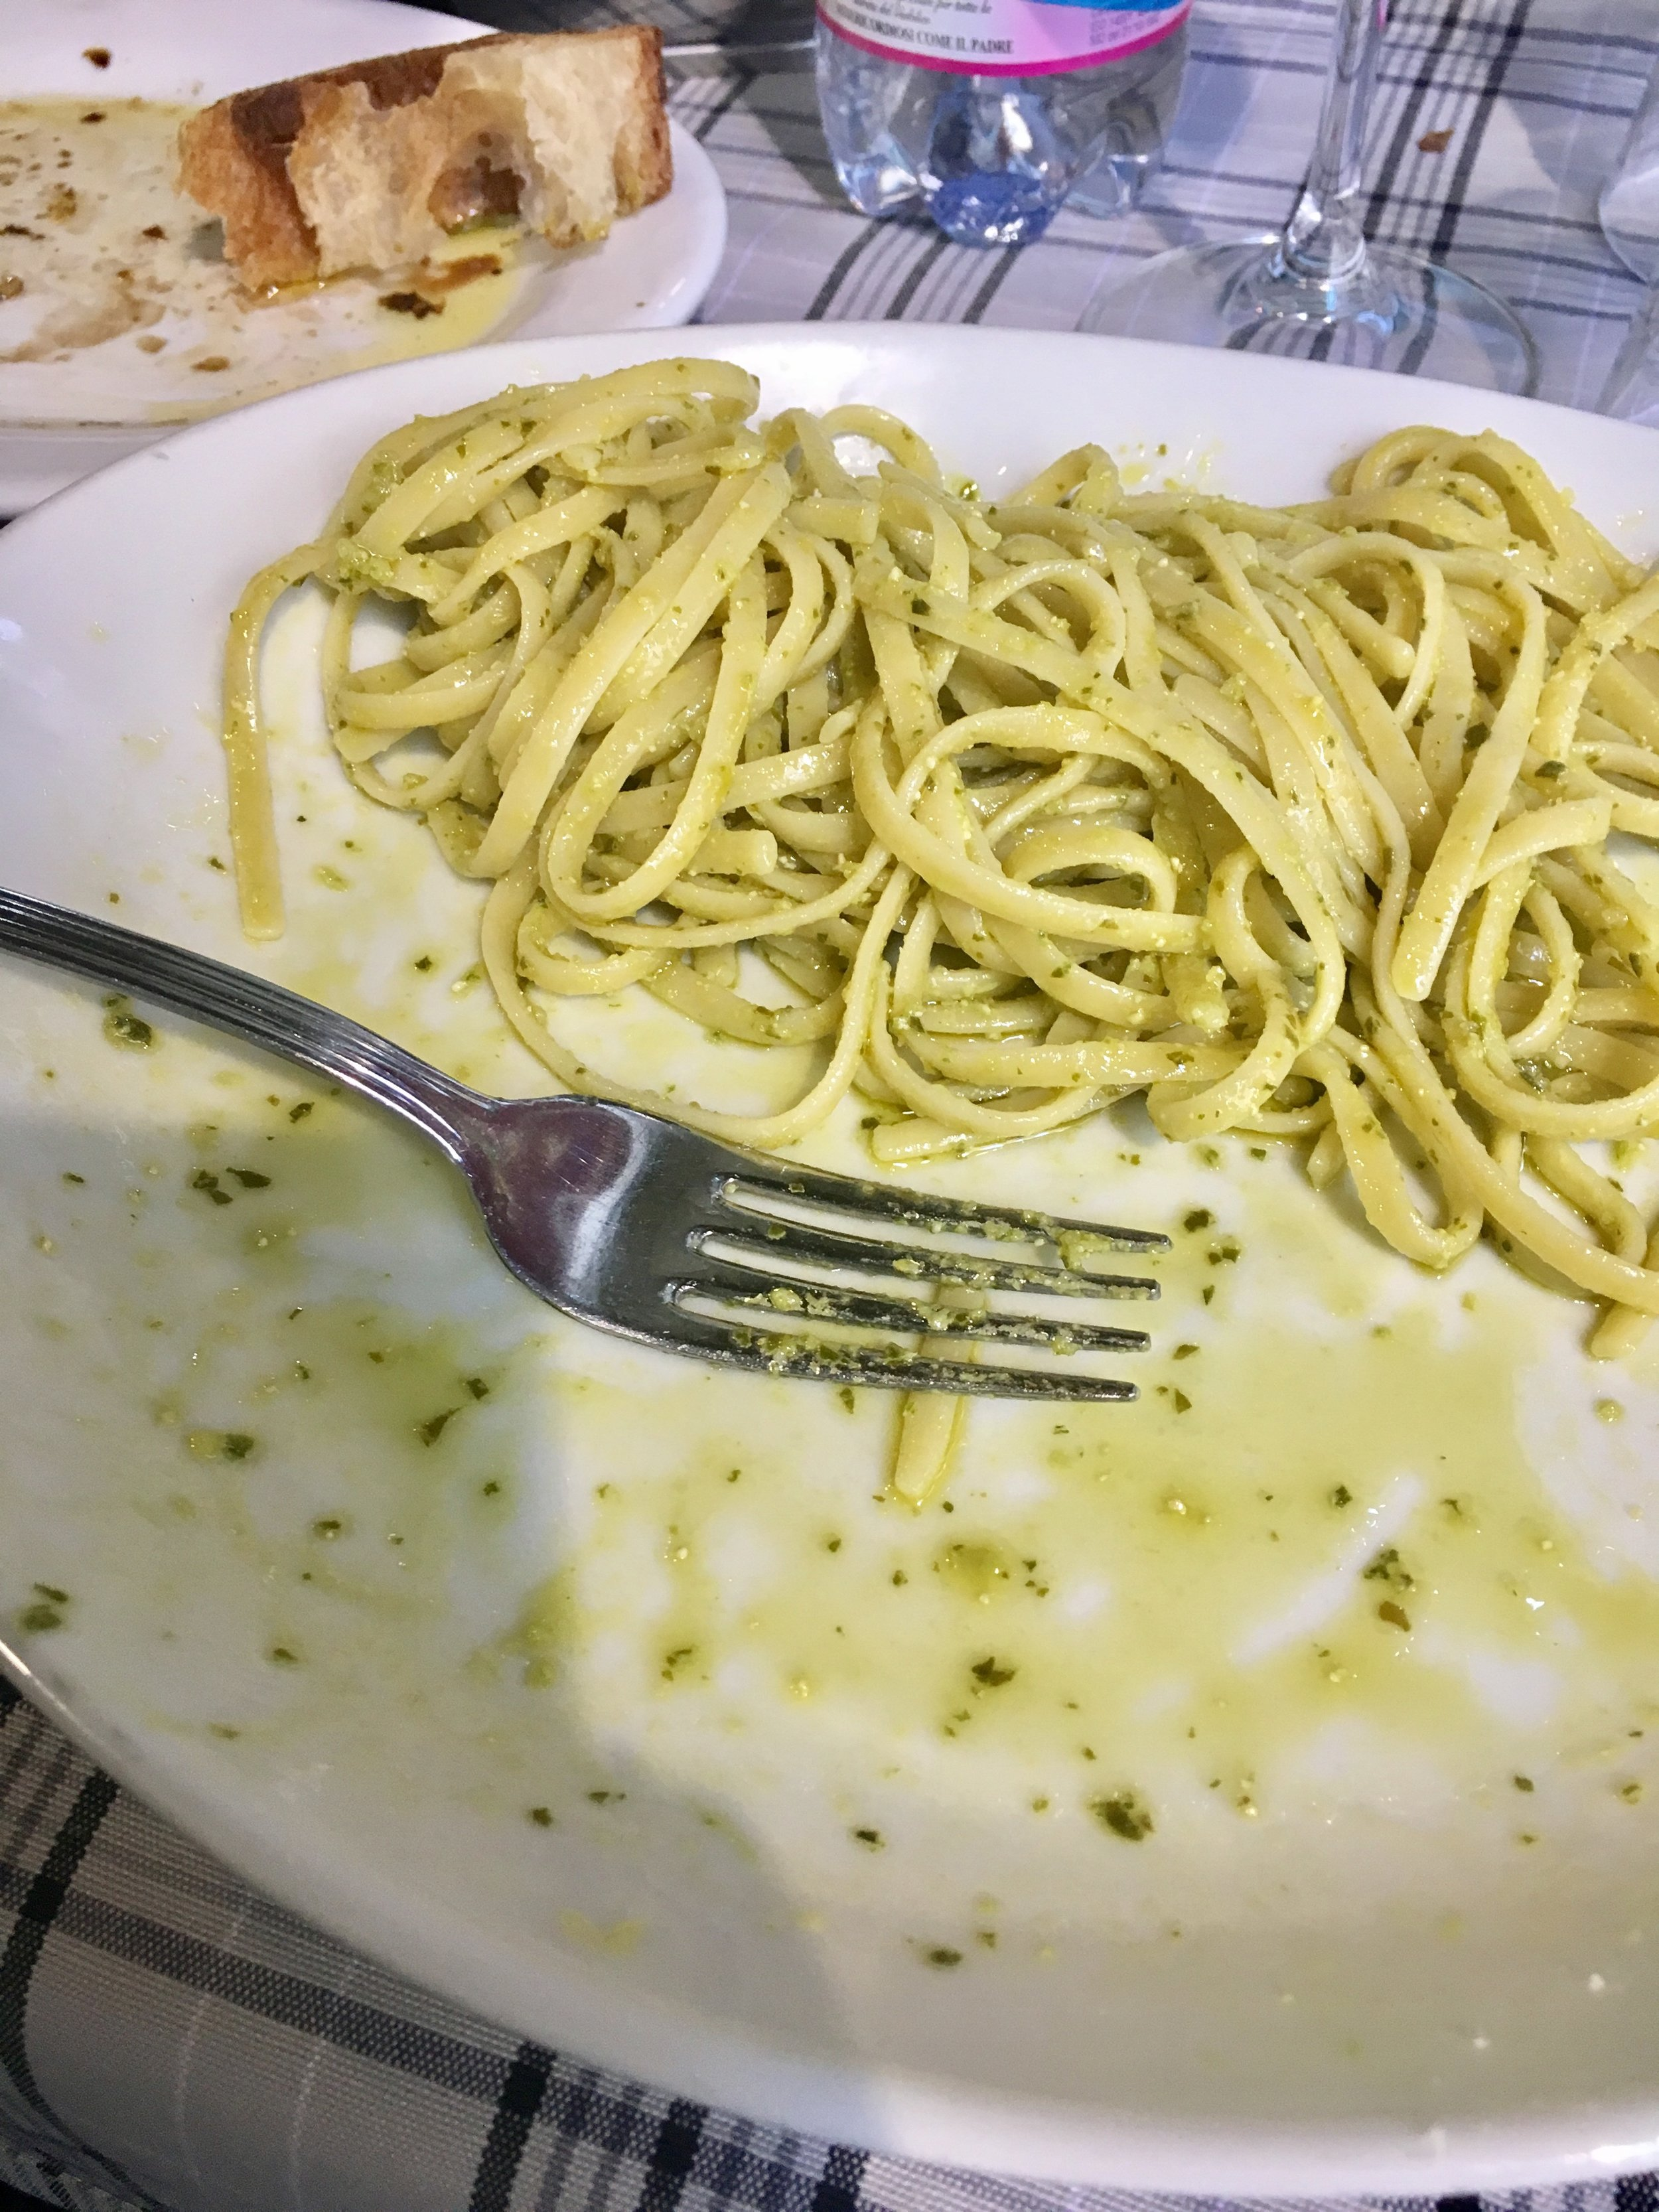 The best Pesto I have ever had! I wish I could remember the name of the restaurant. What is your favorite pasta dish? P.S I was upset that we couldn't  do takeaway (leftovers)!